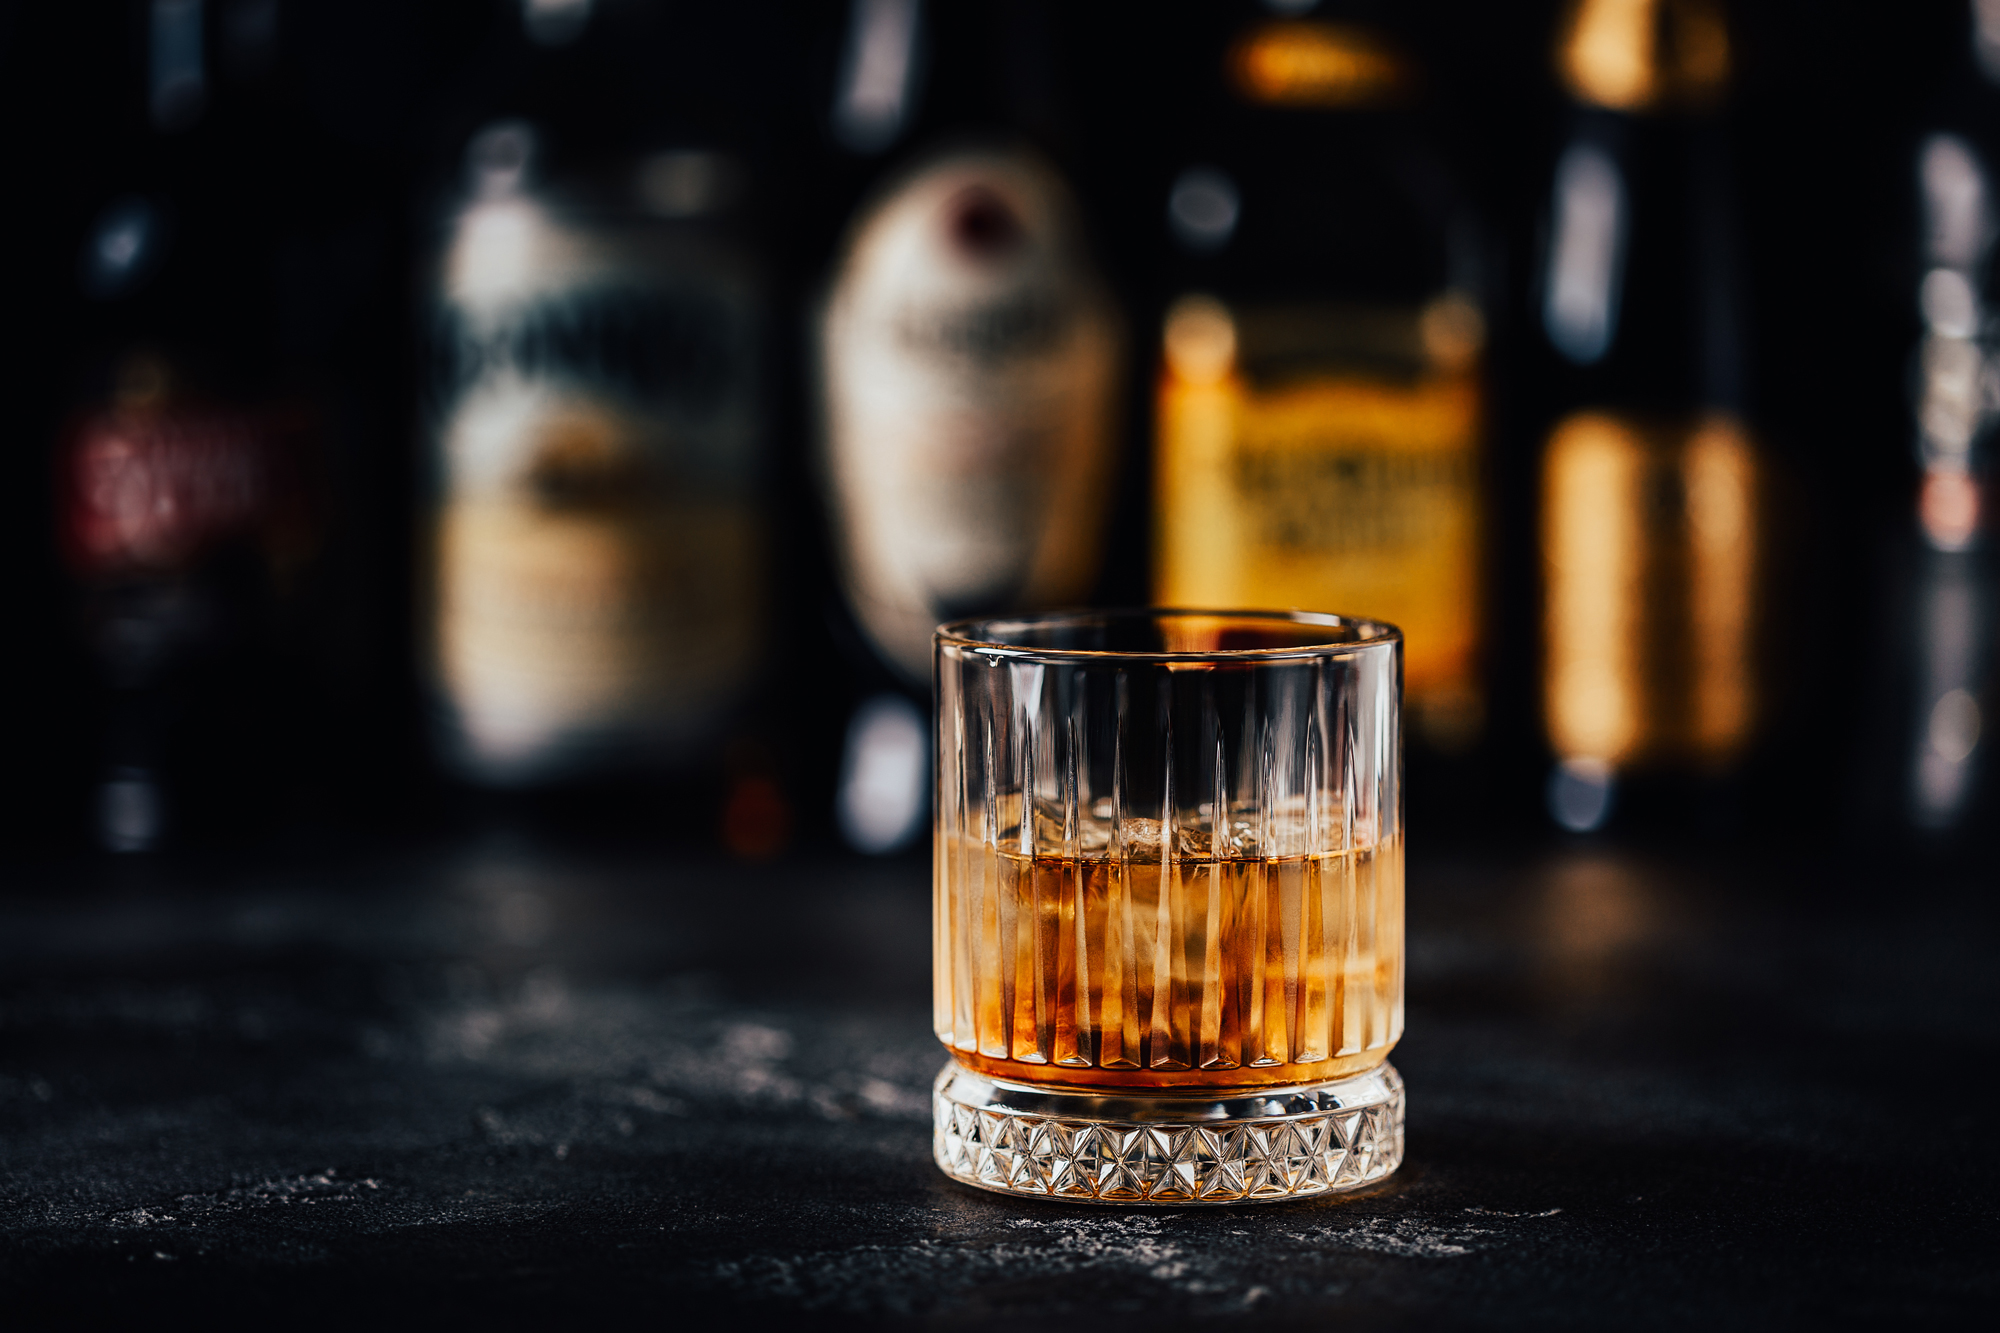 Whiskey with ice on a dark table against the background of bar bottles